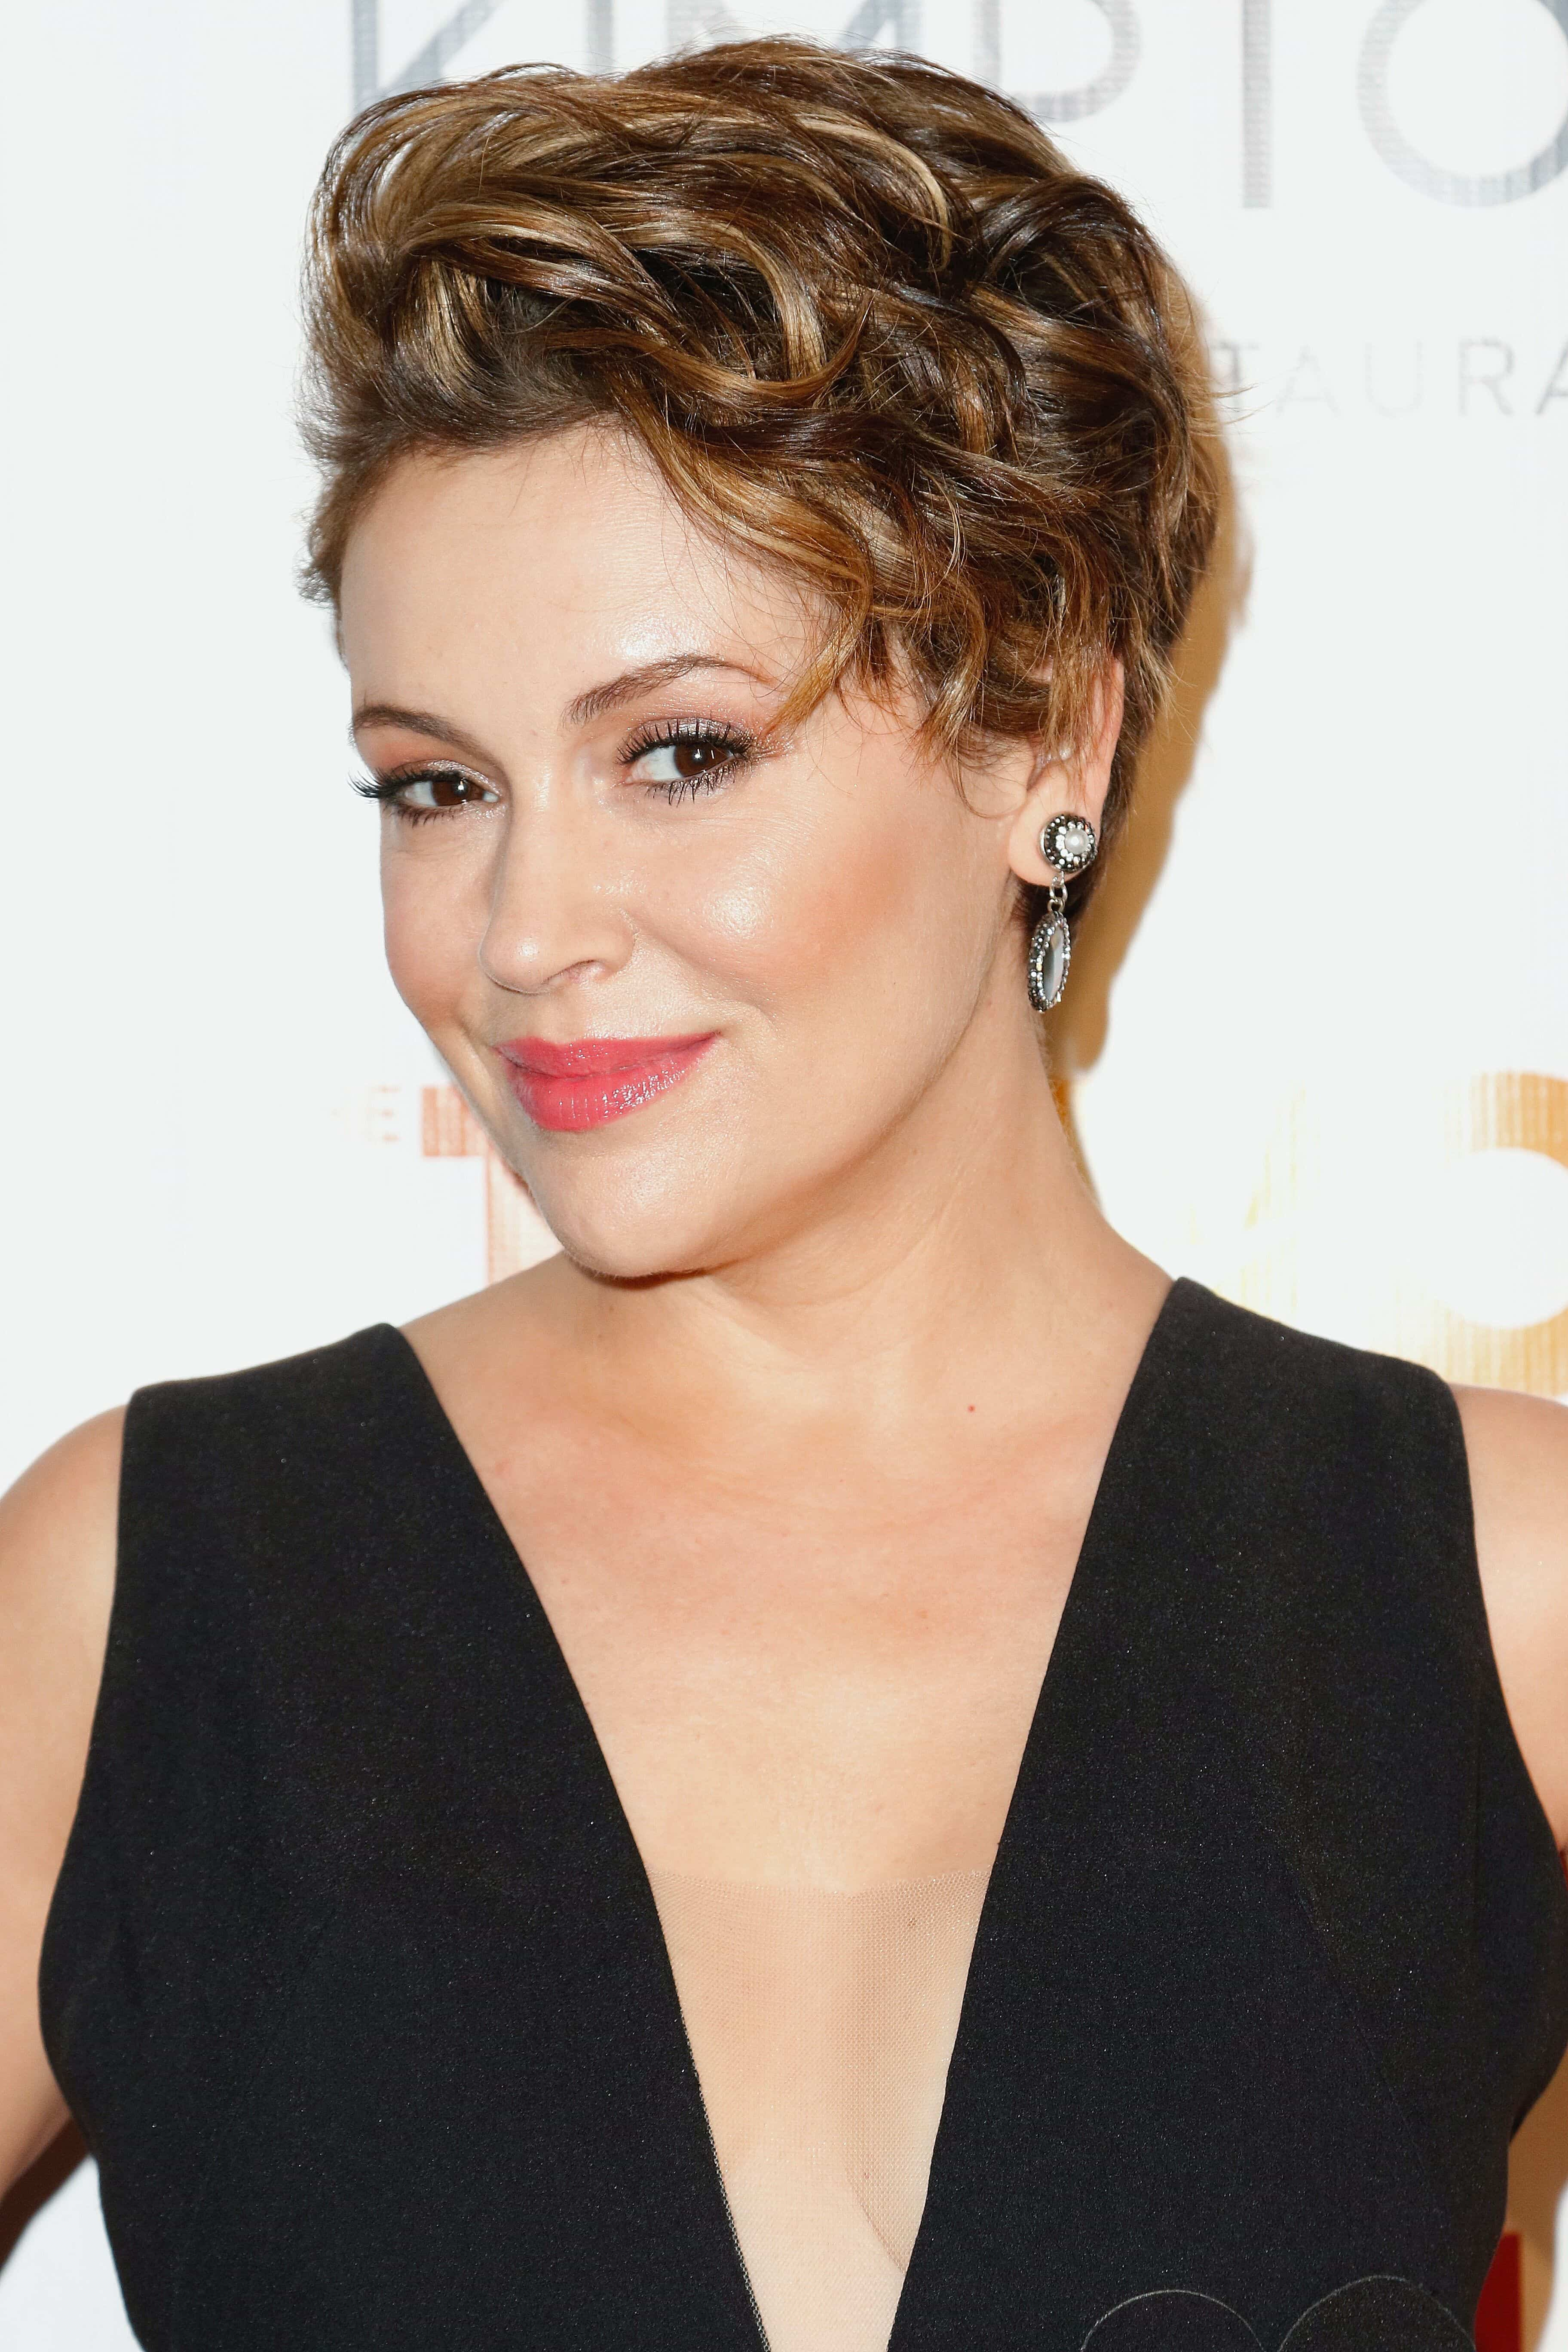 new hairstyles for short hair: Alyssa Milano wavy graduated pixie crop